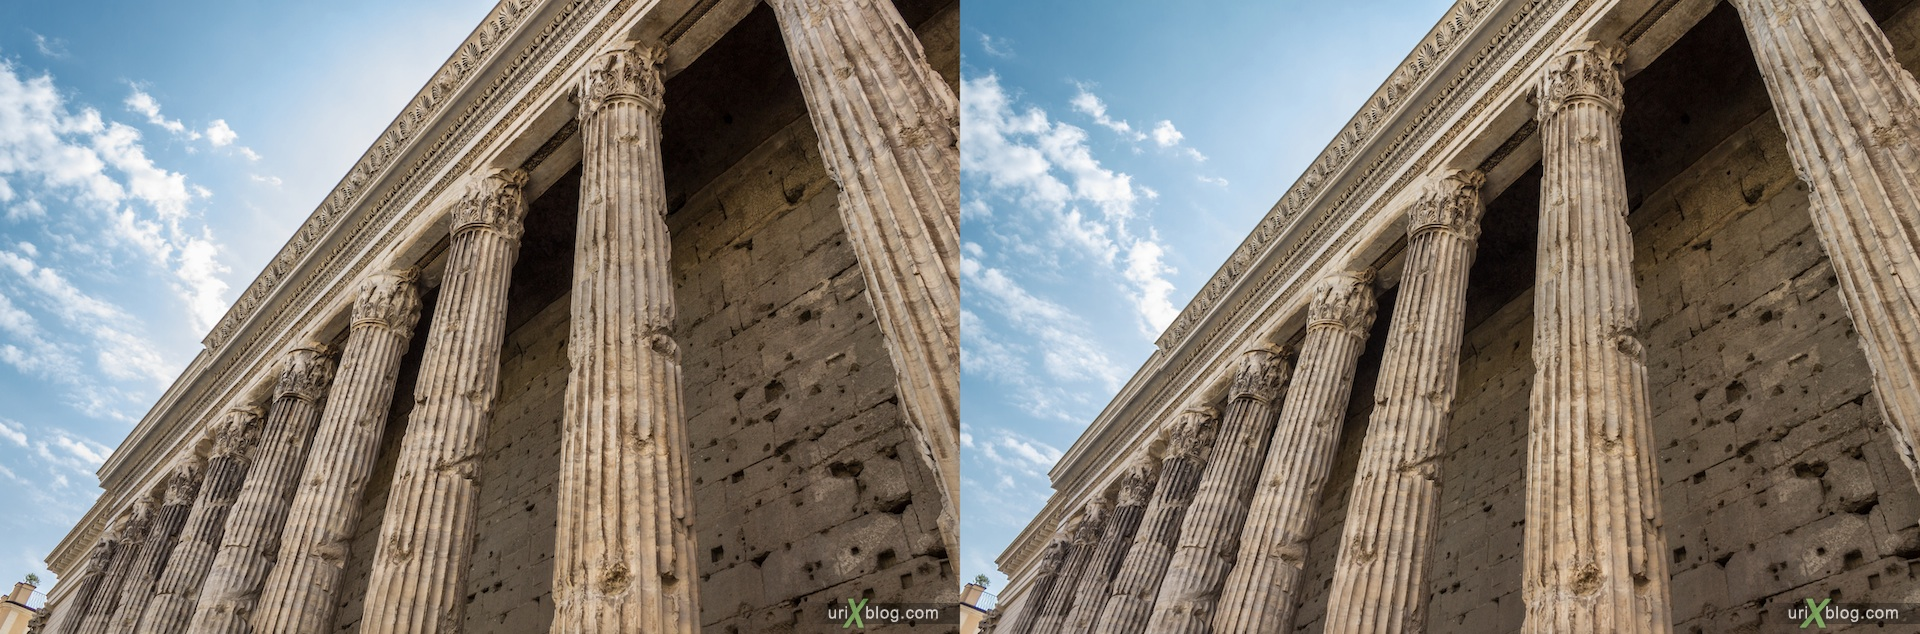 2012, di Pietra square, Rome, Italy, 3D, stereo pair, cross-eyed, crossview, cross view stereo pair